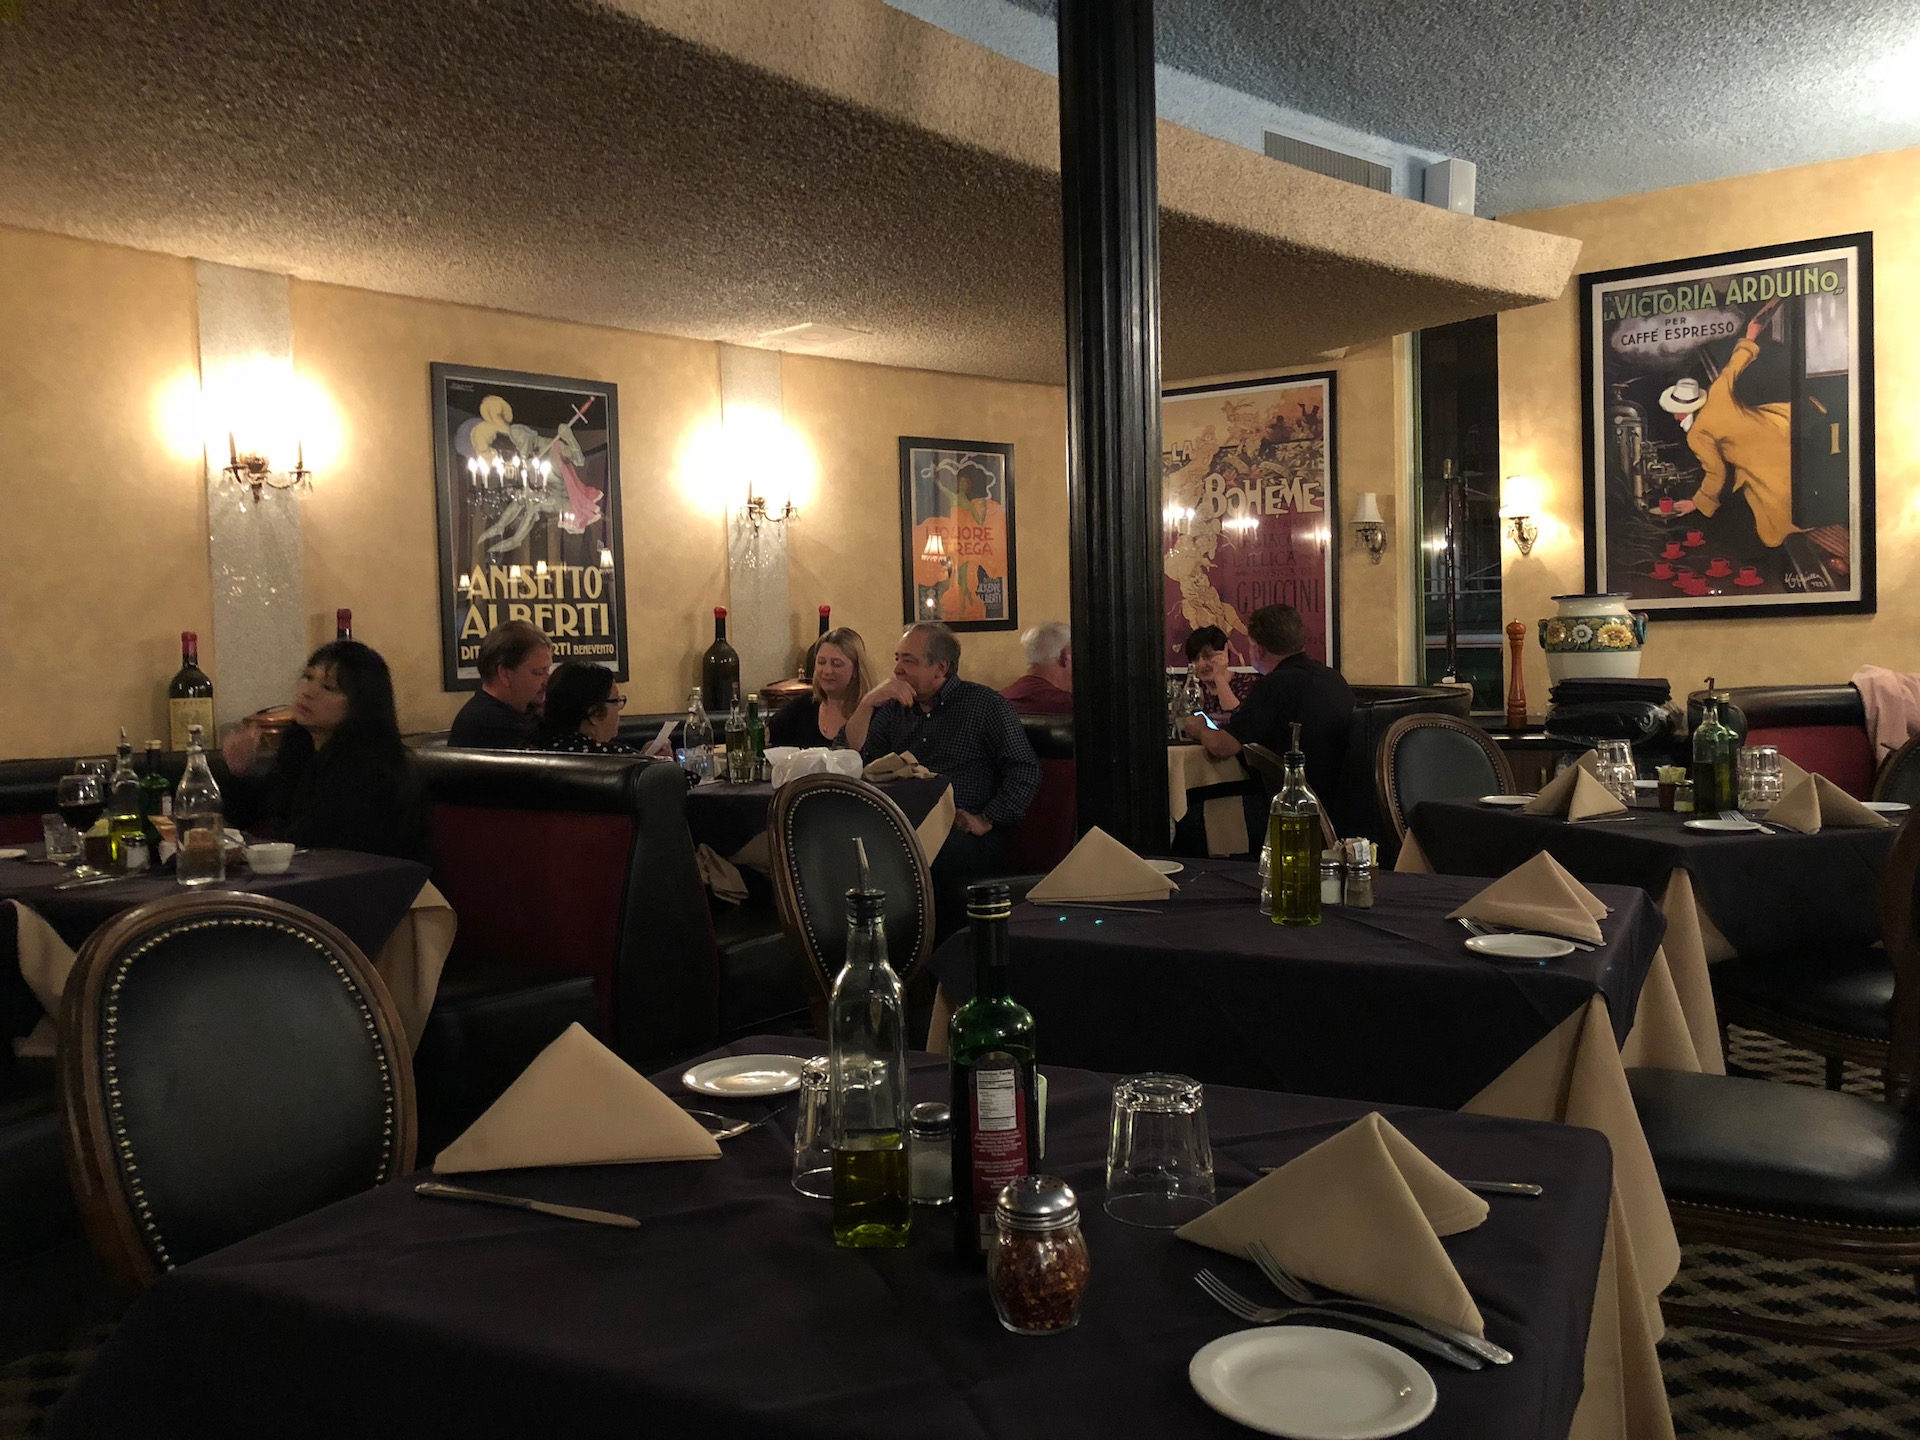 Celebrity Dining: The legendary Bertolucci's just off 101 in South San Francisco has been around since 1929 and still sees several hundred diners on any given night.